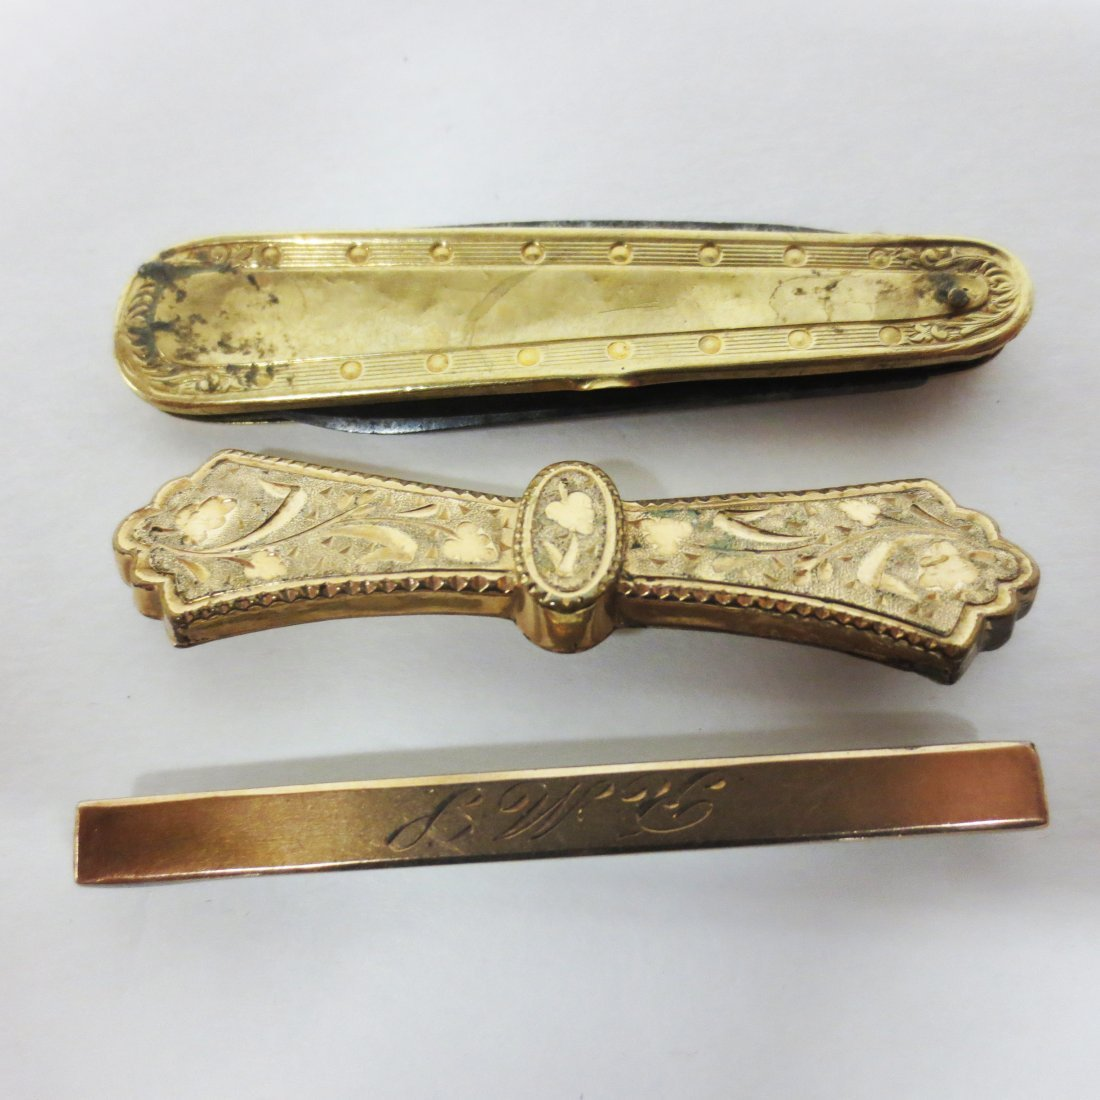 Victorian bar pins and pocket knife